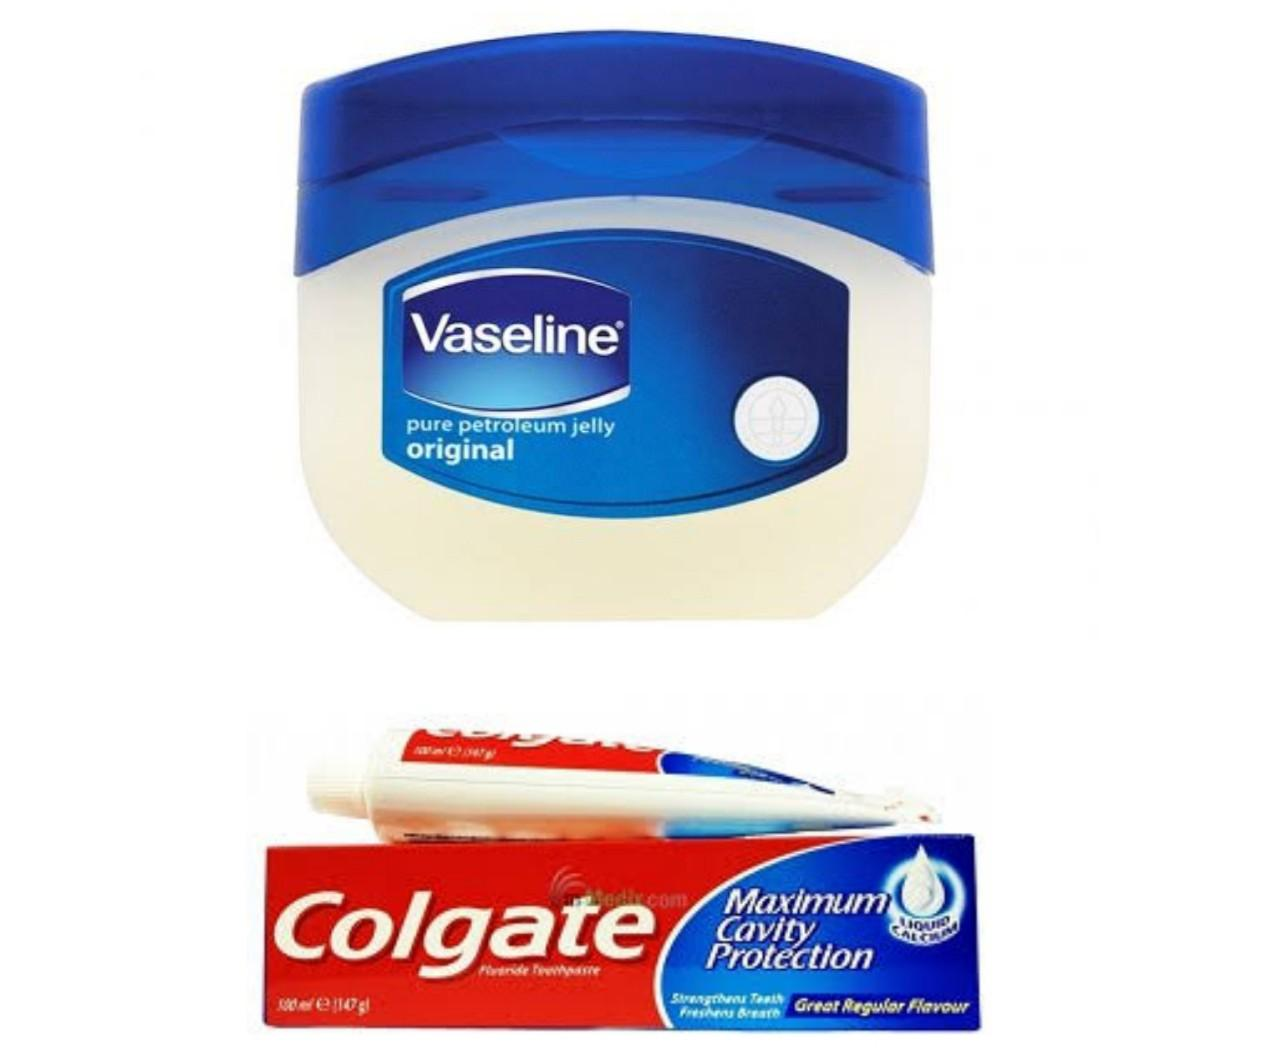 Vaseline And Toothpaste For Bigger Buttocks